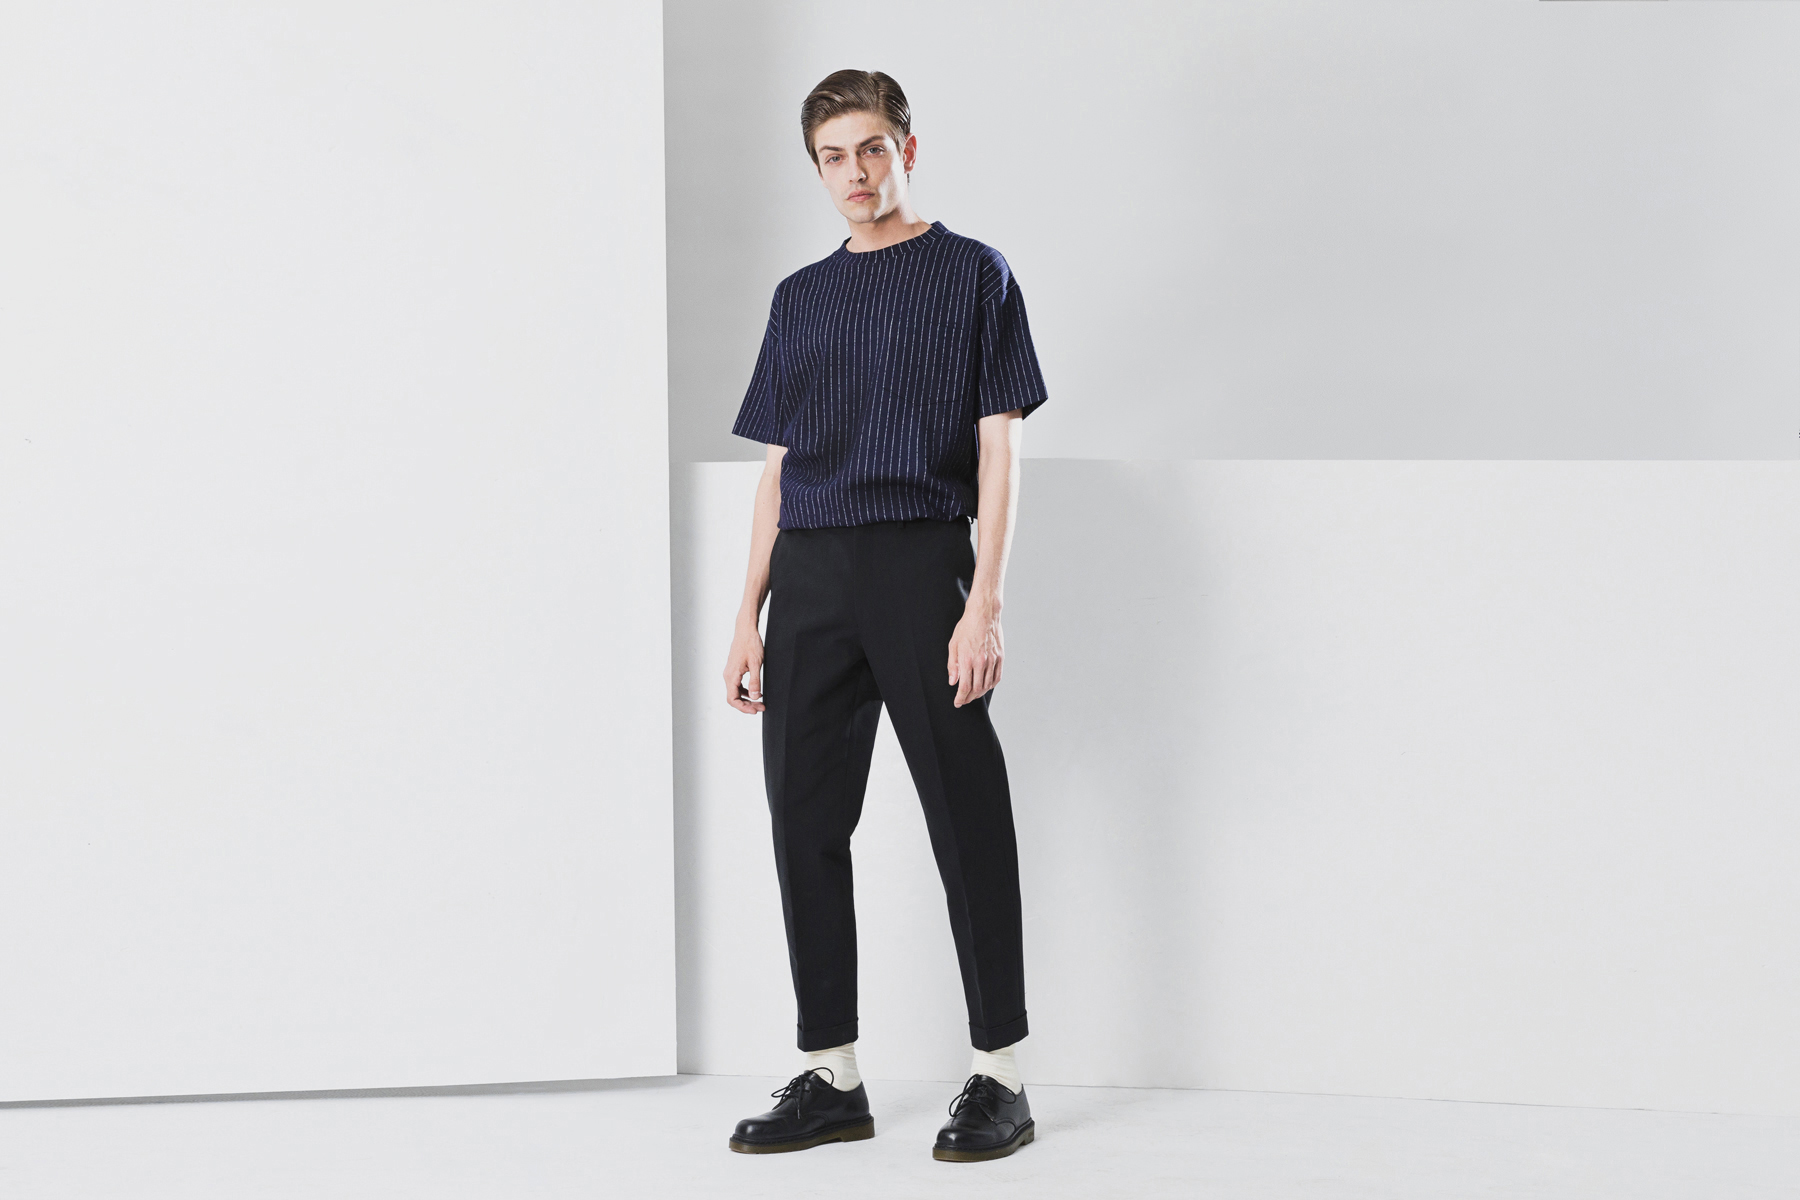 N.HOOLYWOOD 2015 Fall/Winter New Arrivals